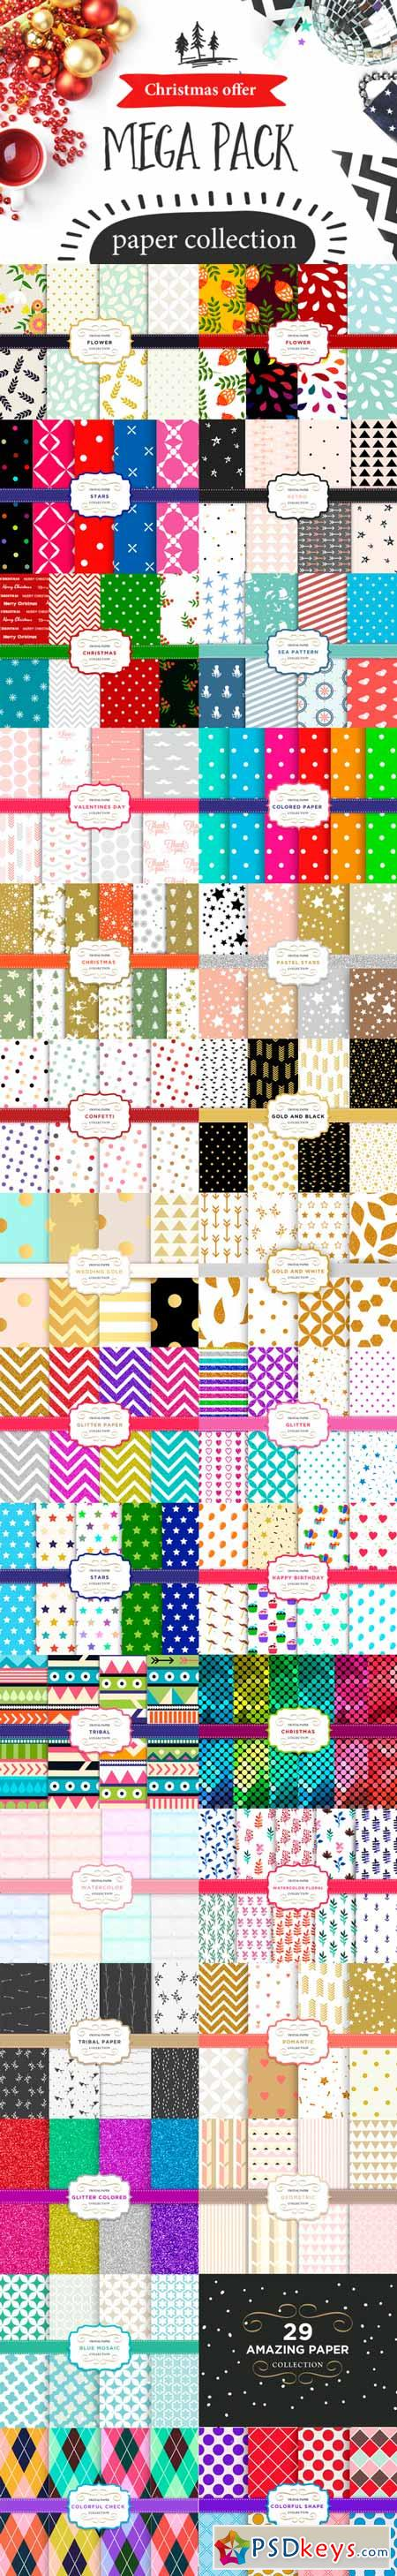 Pattern pack - paper collection 461148